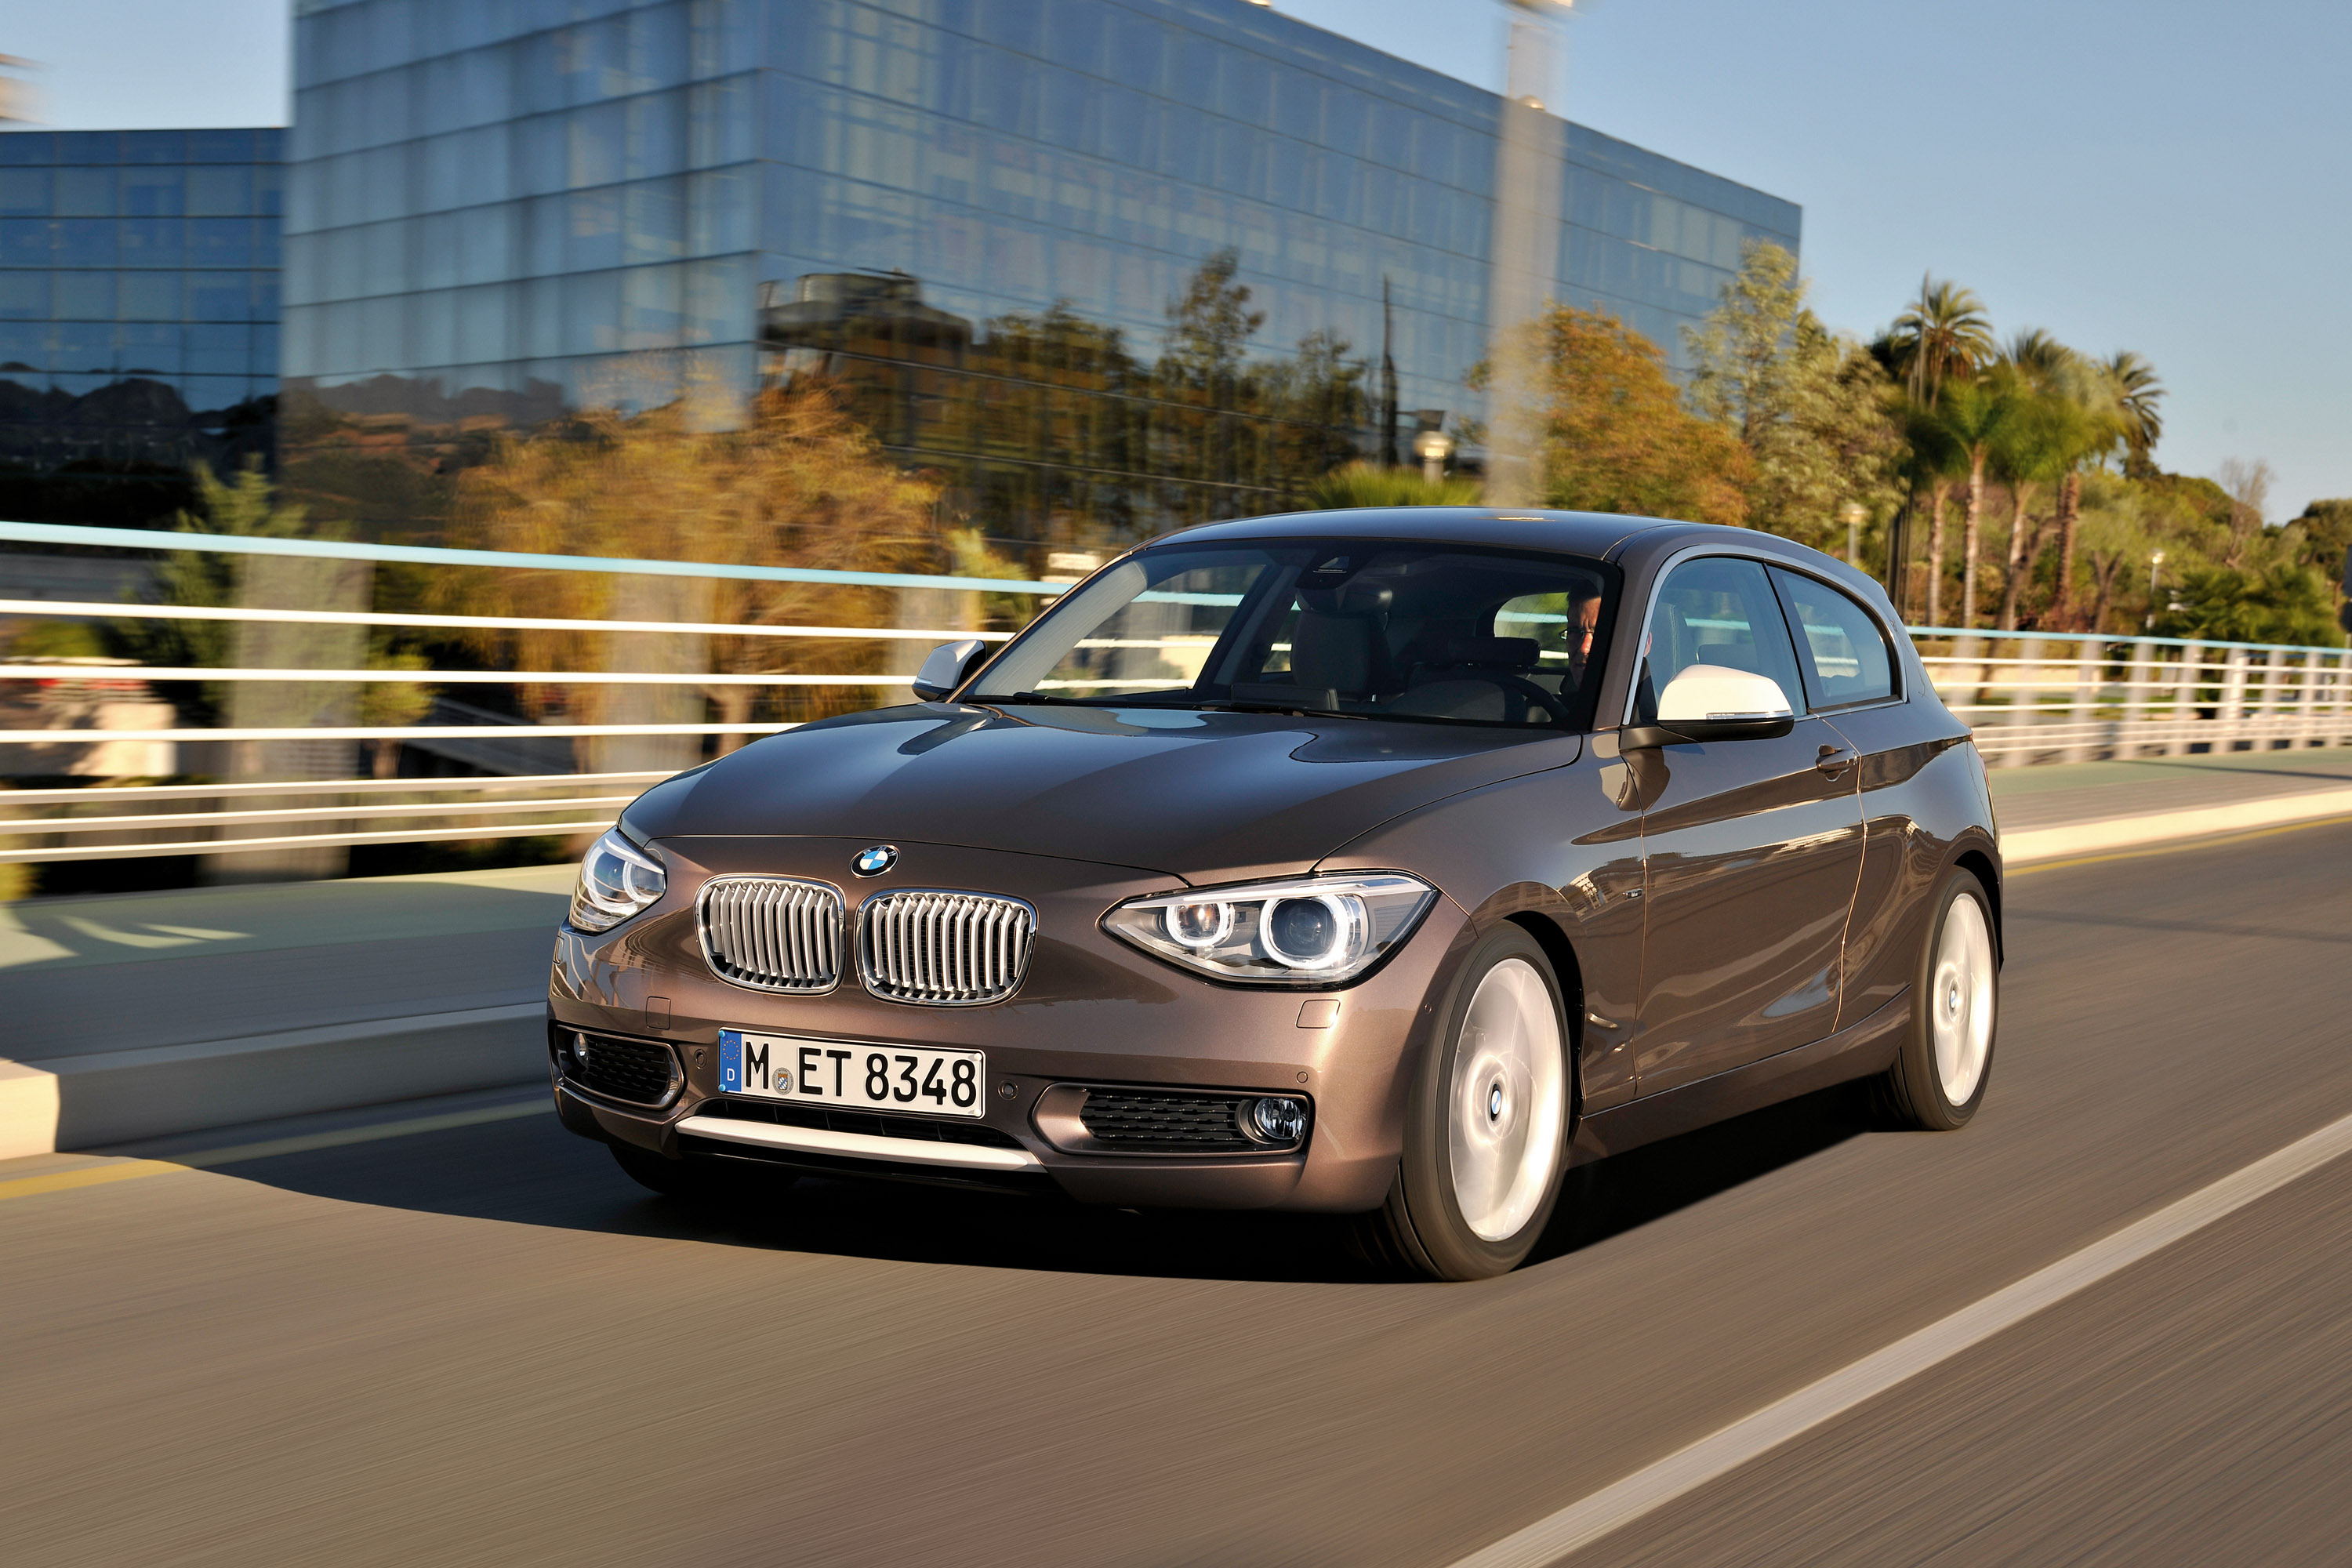 BMW comes out with the new threedoor 2013 BMW 1 Series